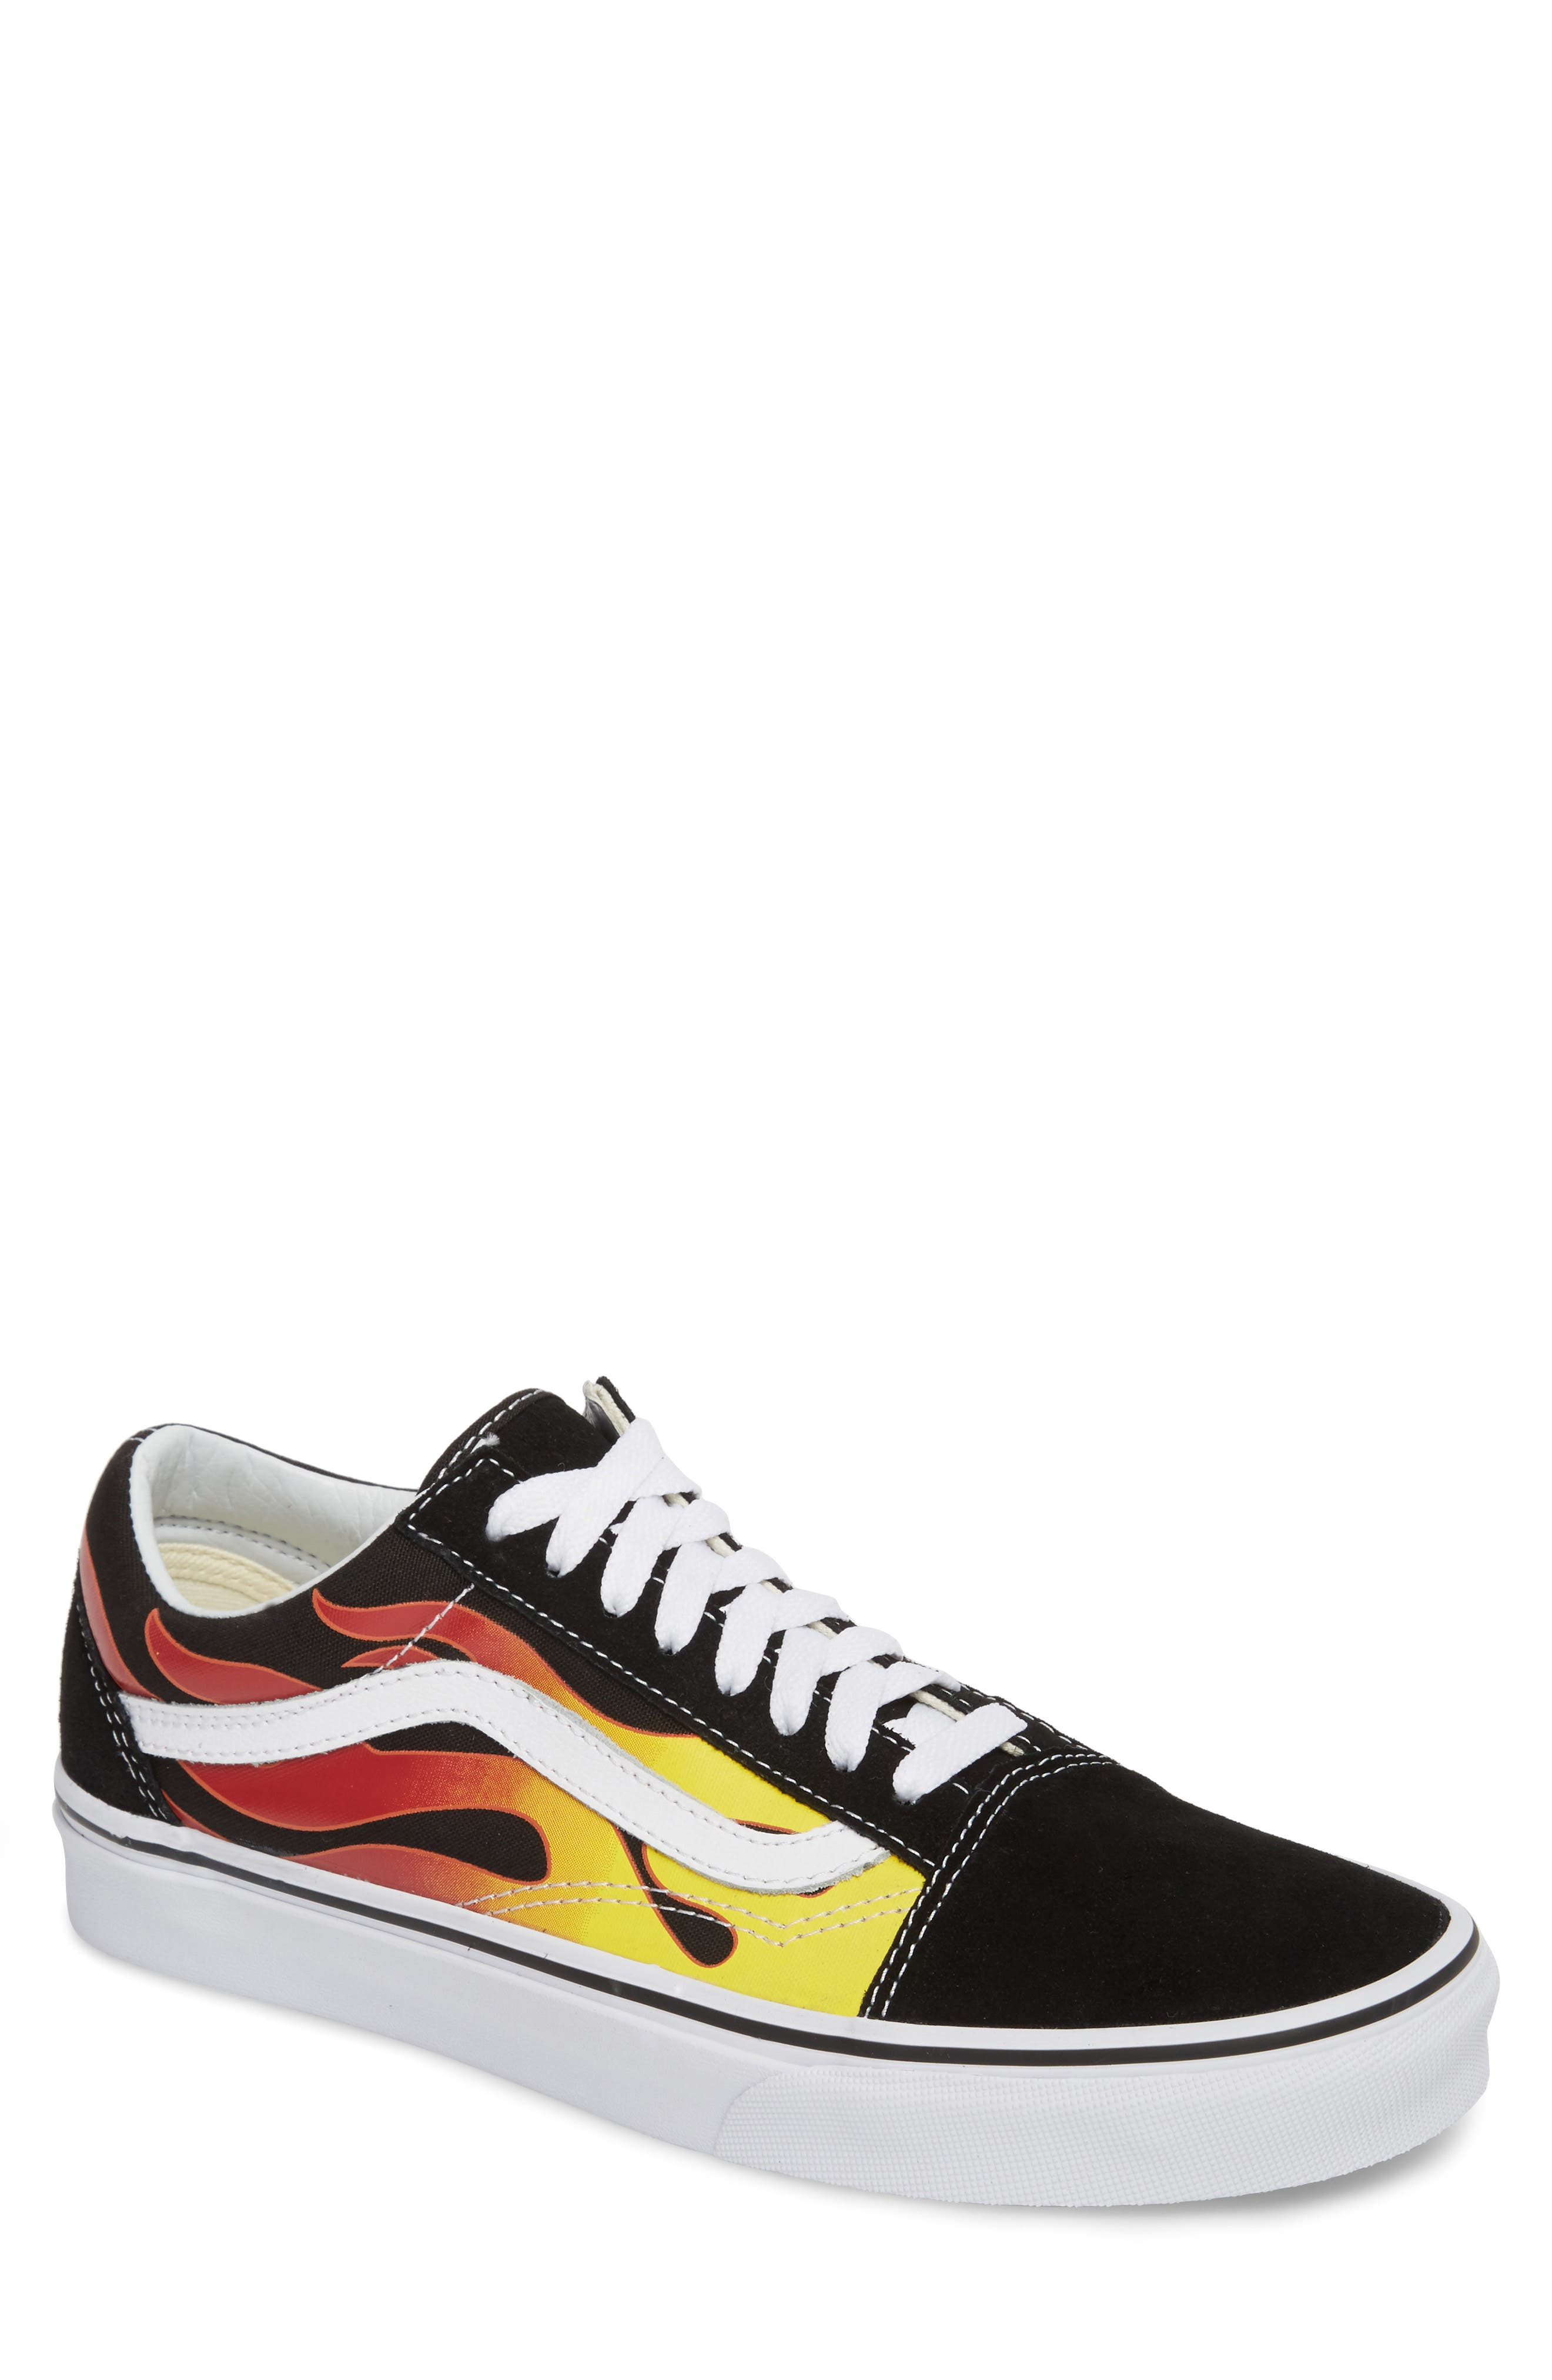 UA Old Skool Low Top Sneaker,                         Main,                         color, Black/ Black/ True White